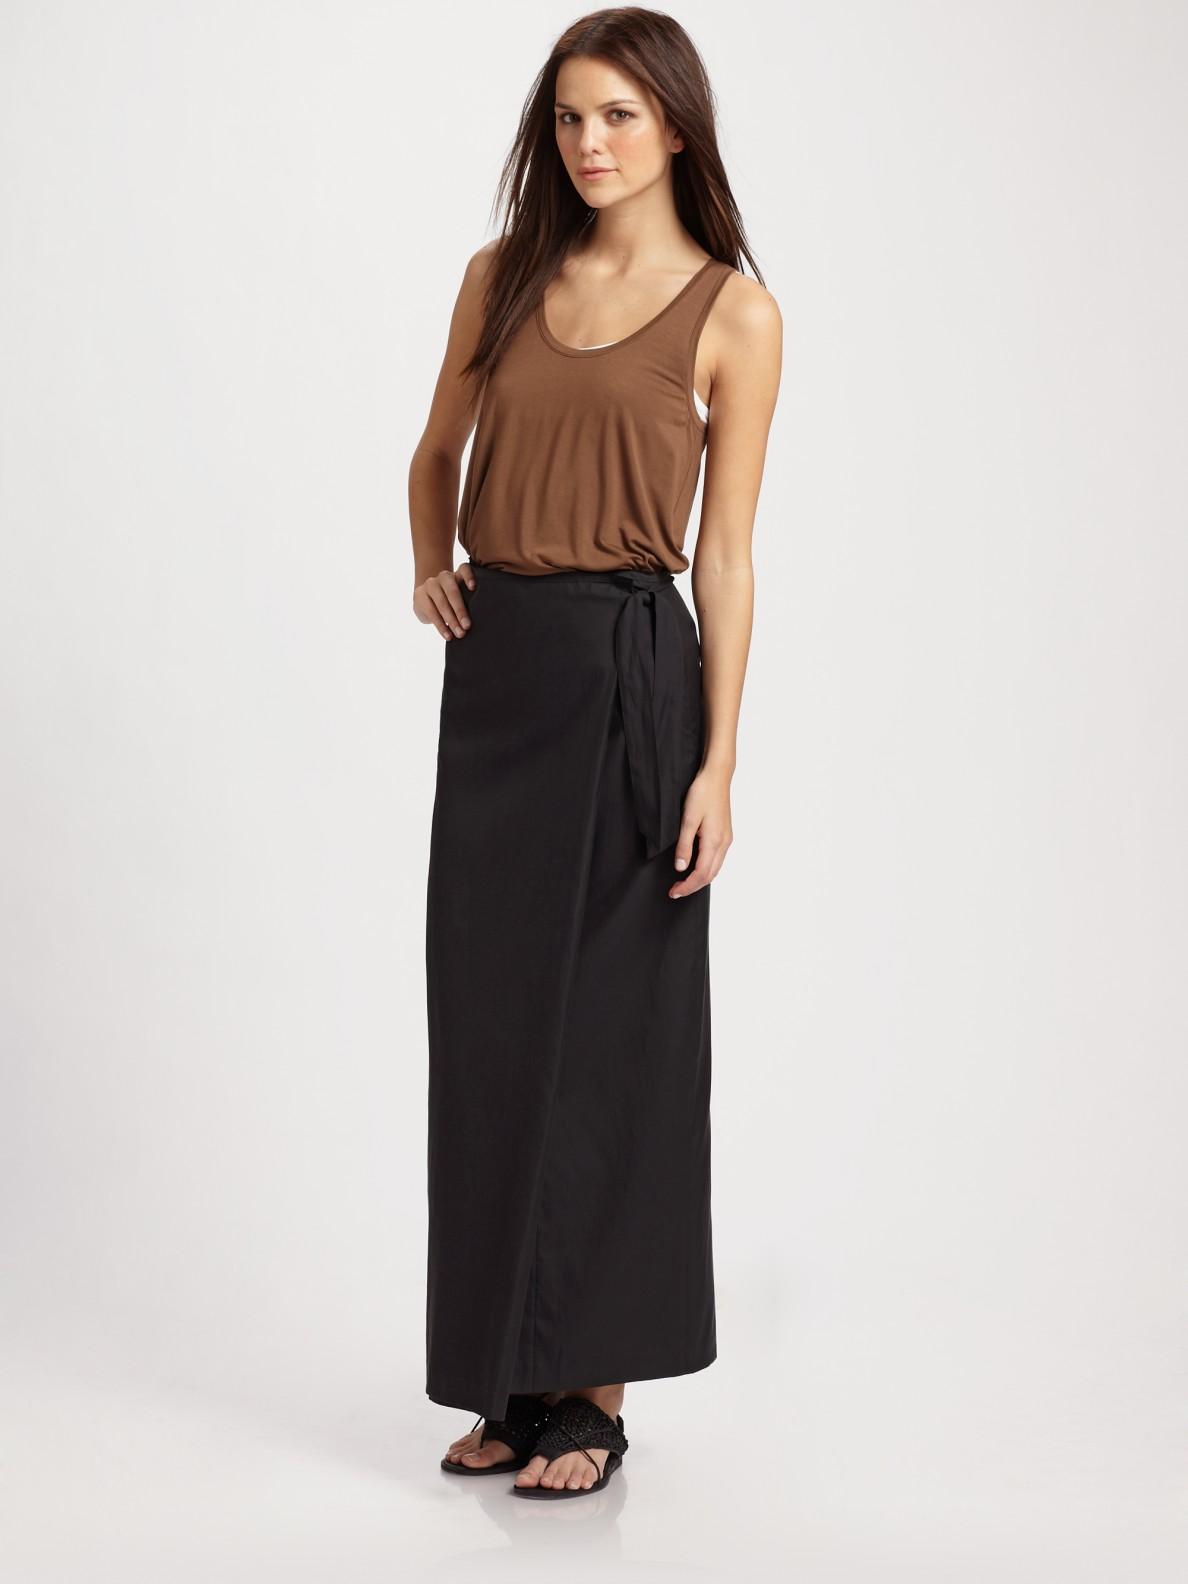 Vince Long Wrap Skirt in Black | Lyst